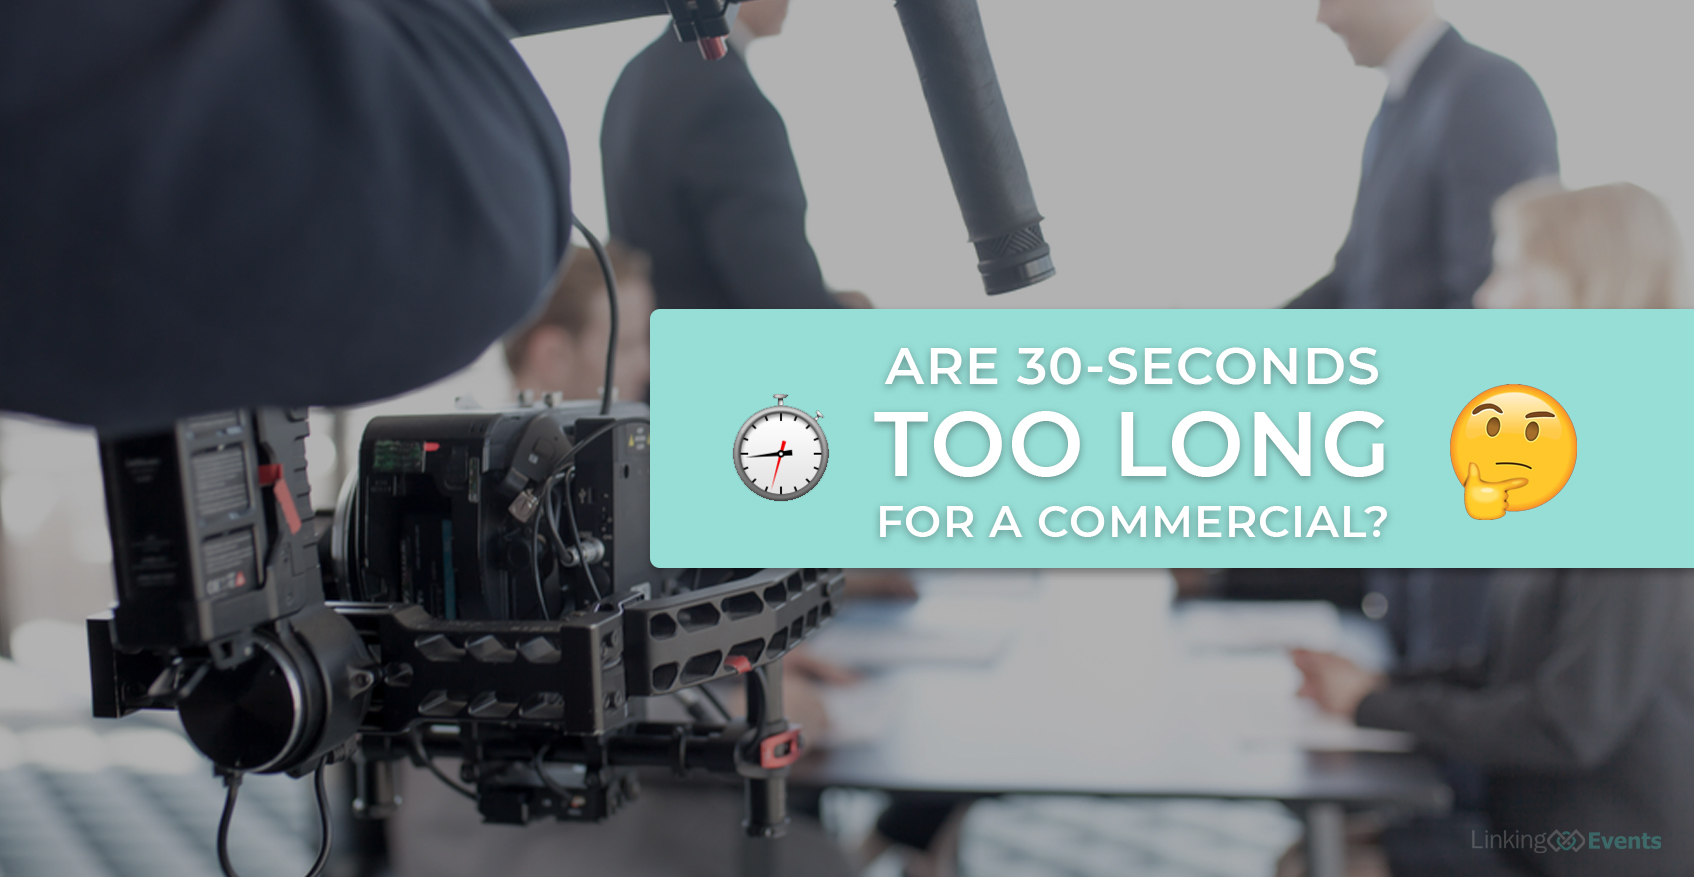 The 30 Second Commercial is Officially Too Long